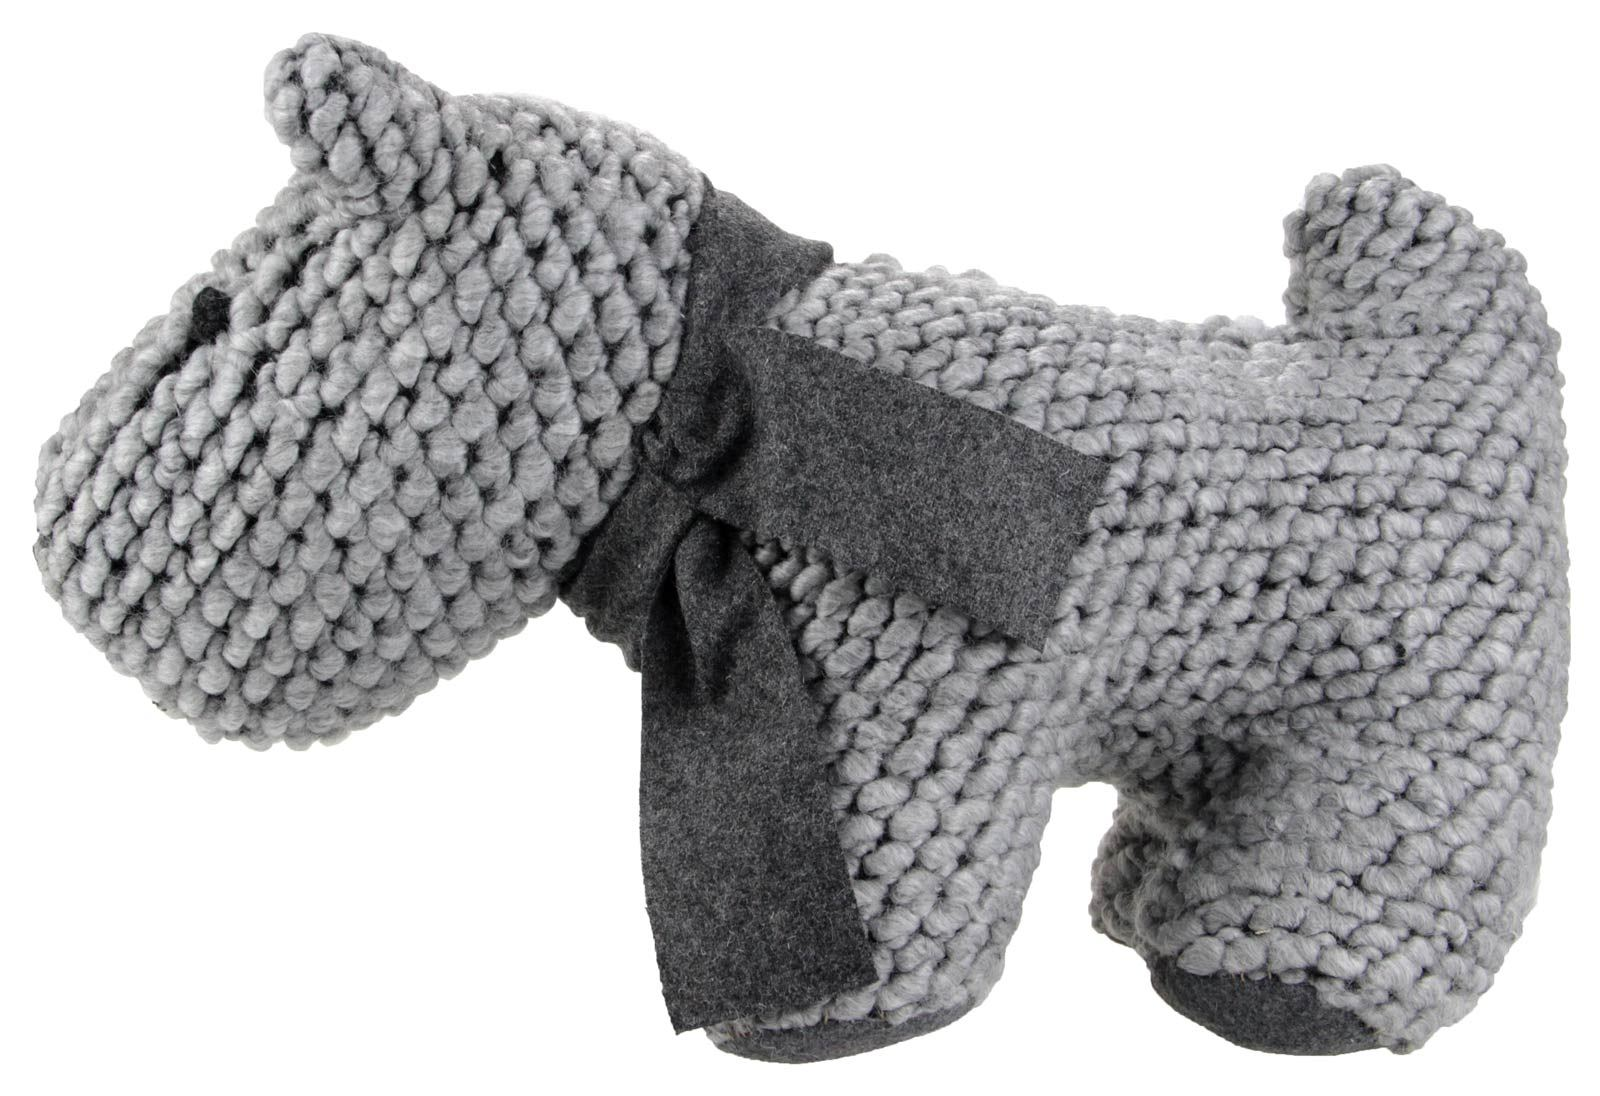 Knitted dog door stop cute novelty gift animal stopper grey ebay - Cute door stoppers ...